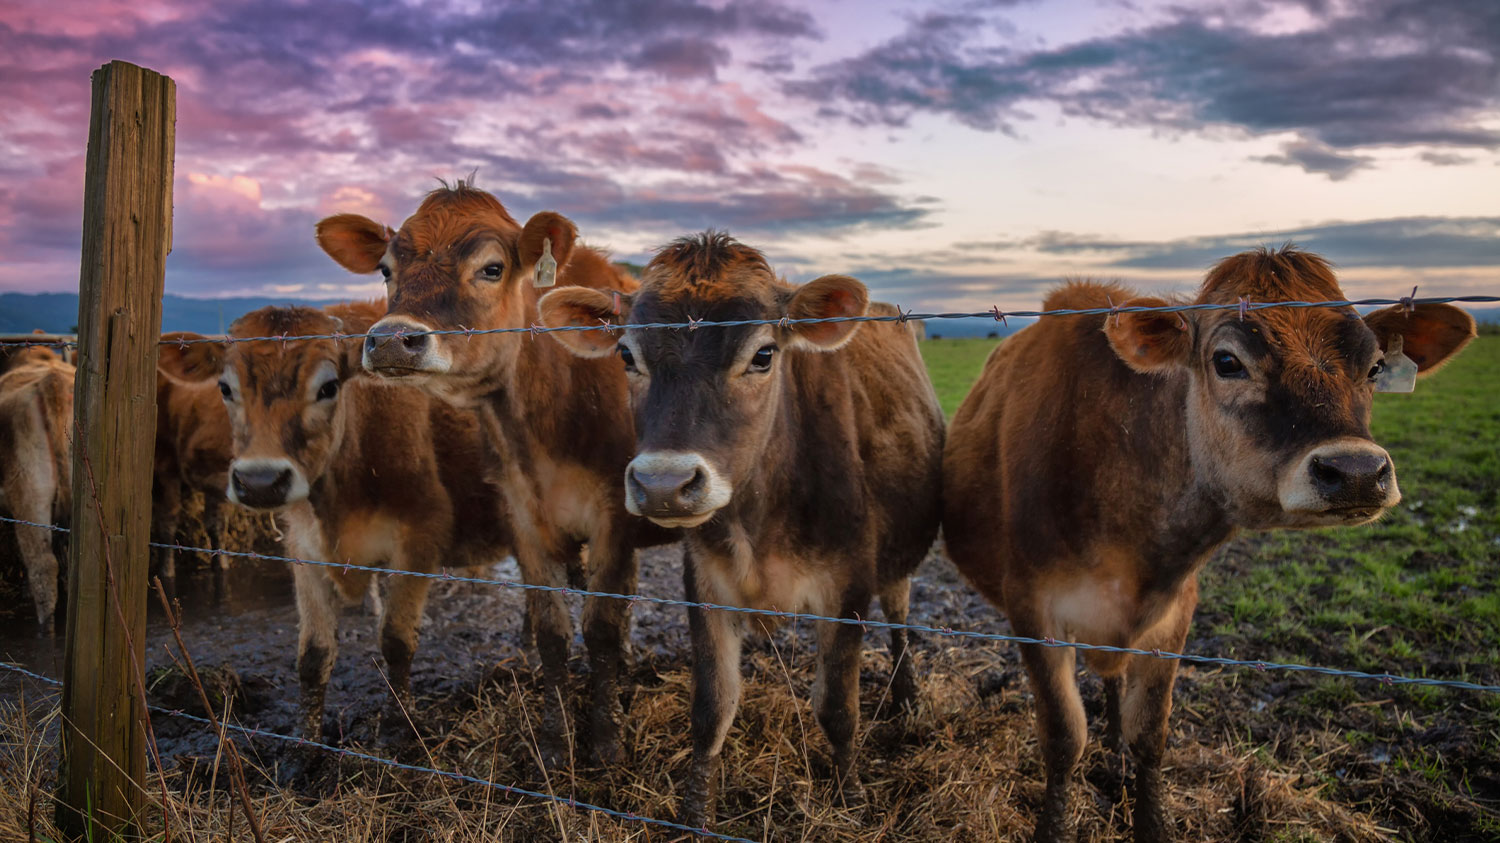 Cows behind a cattle fence